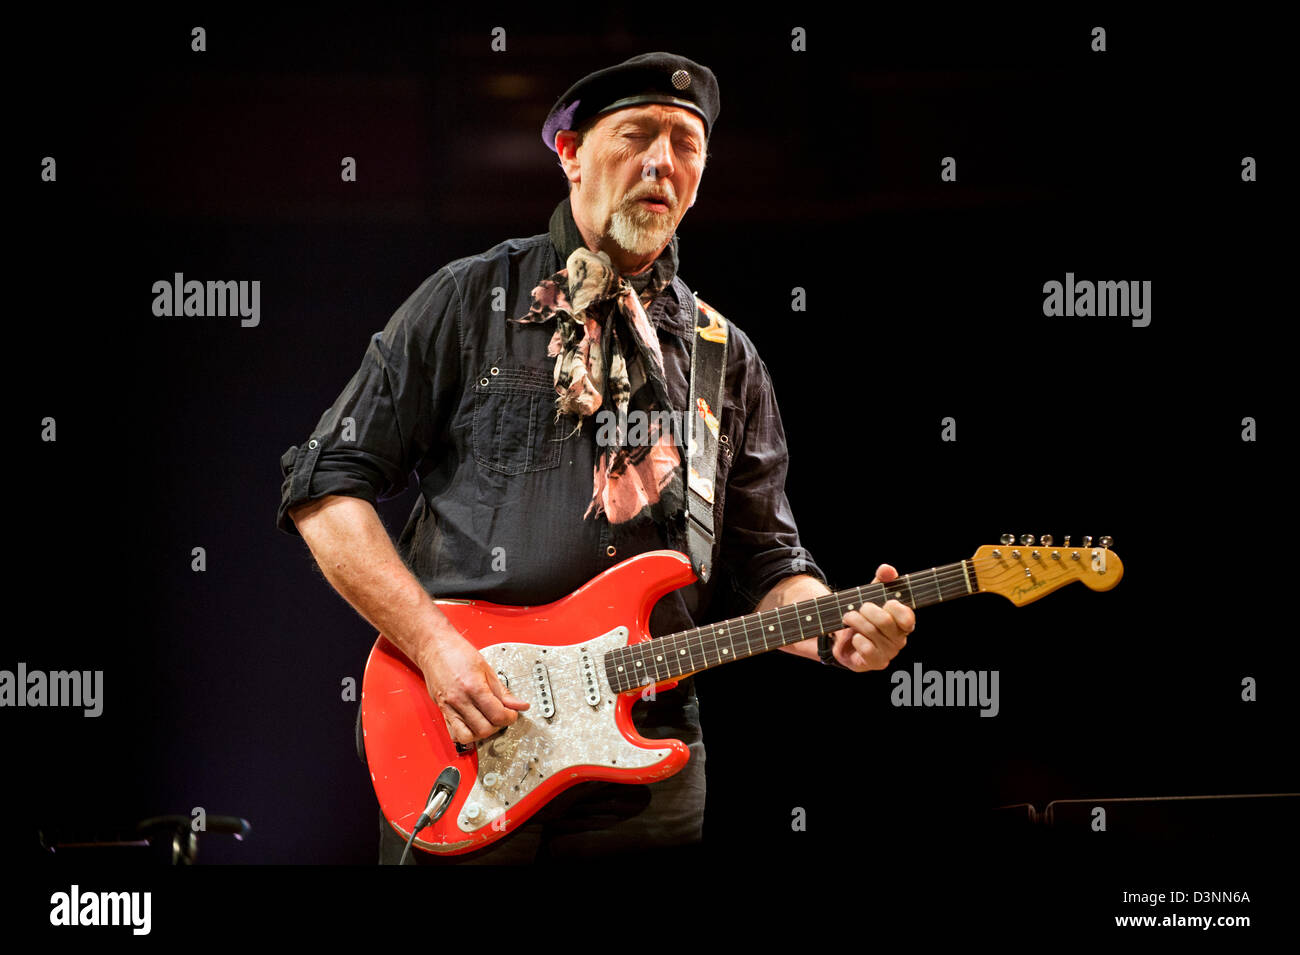 Birmingham, UK. 21st February 2013.  Singer-songwriter and guitarist Richard Thompson with his Electric Trio in - Stock Image